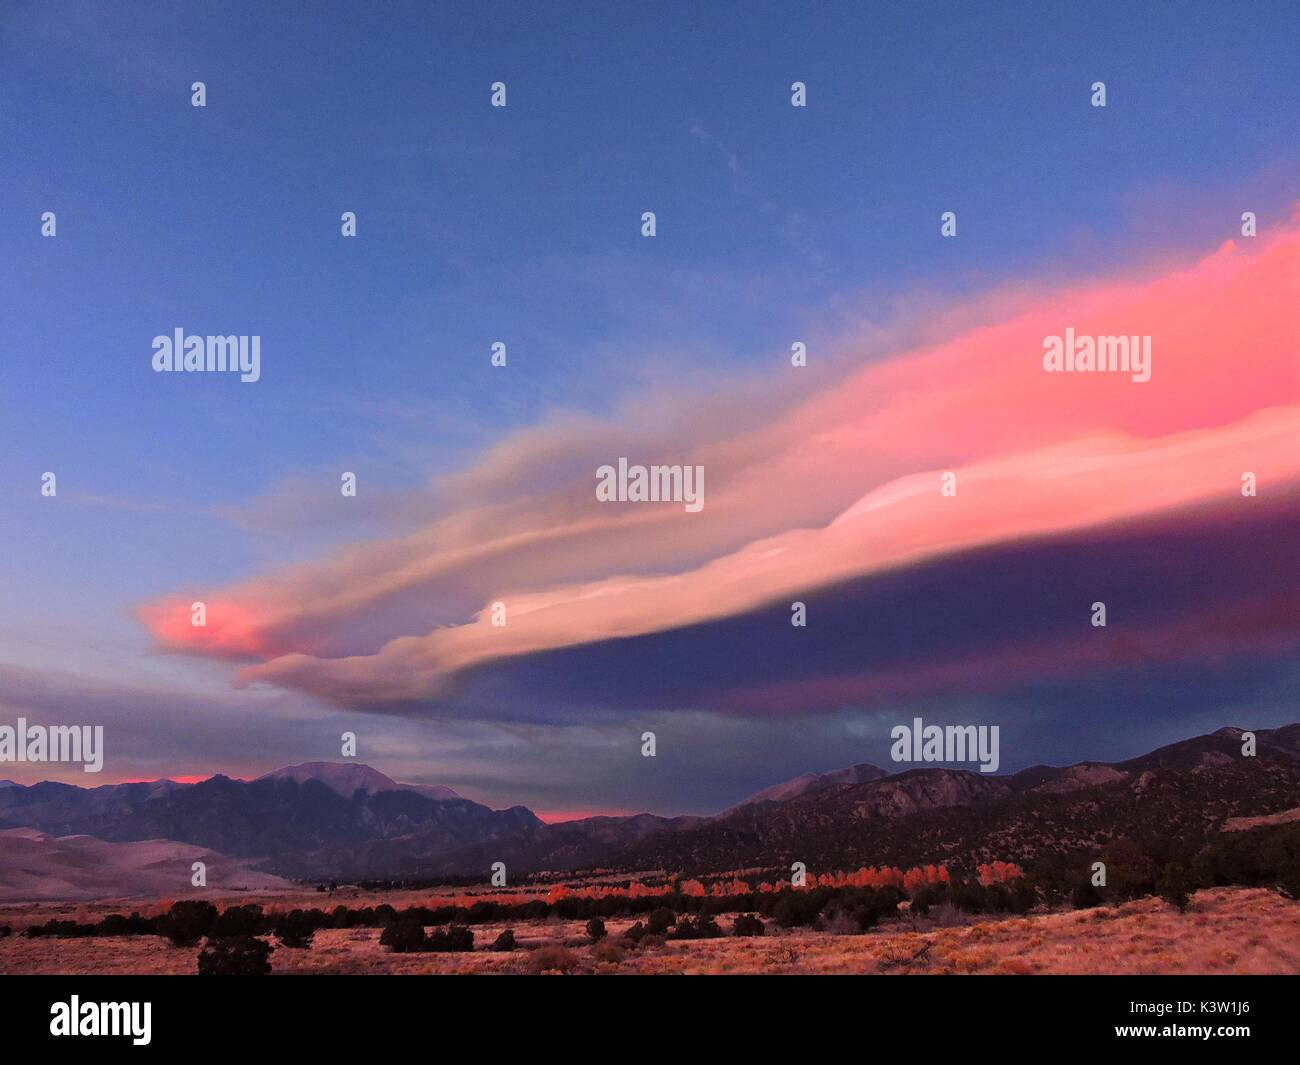 Lenticular clouds form at sunset above the Medano Pass of the Sangre de Cristo Mountains at the Great Sand Dunes National Park and Preserve October 14, 2016 near Westcliffe, Colorado.  (photo by Patrick Myers  via Planetpix) - Stock Image